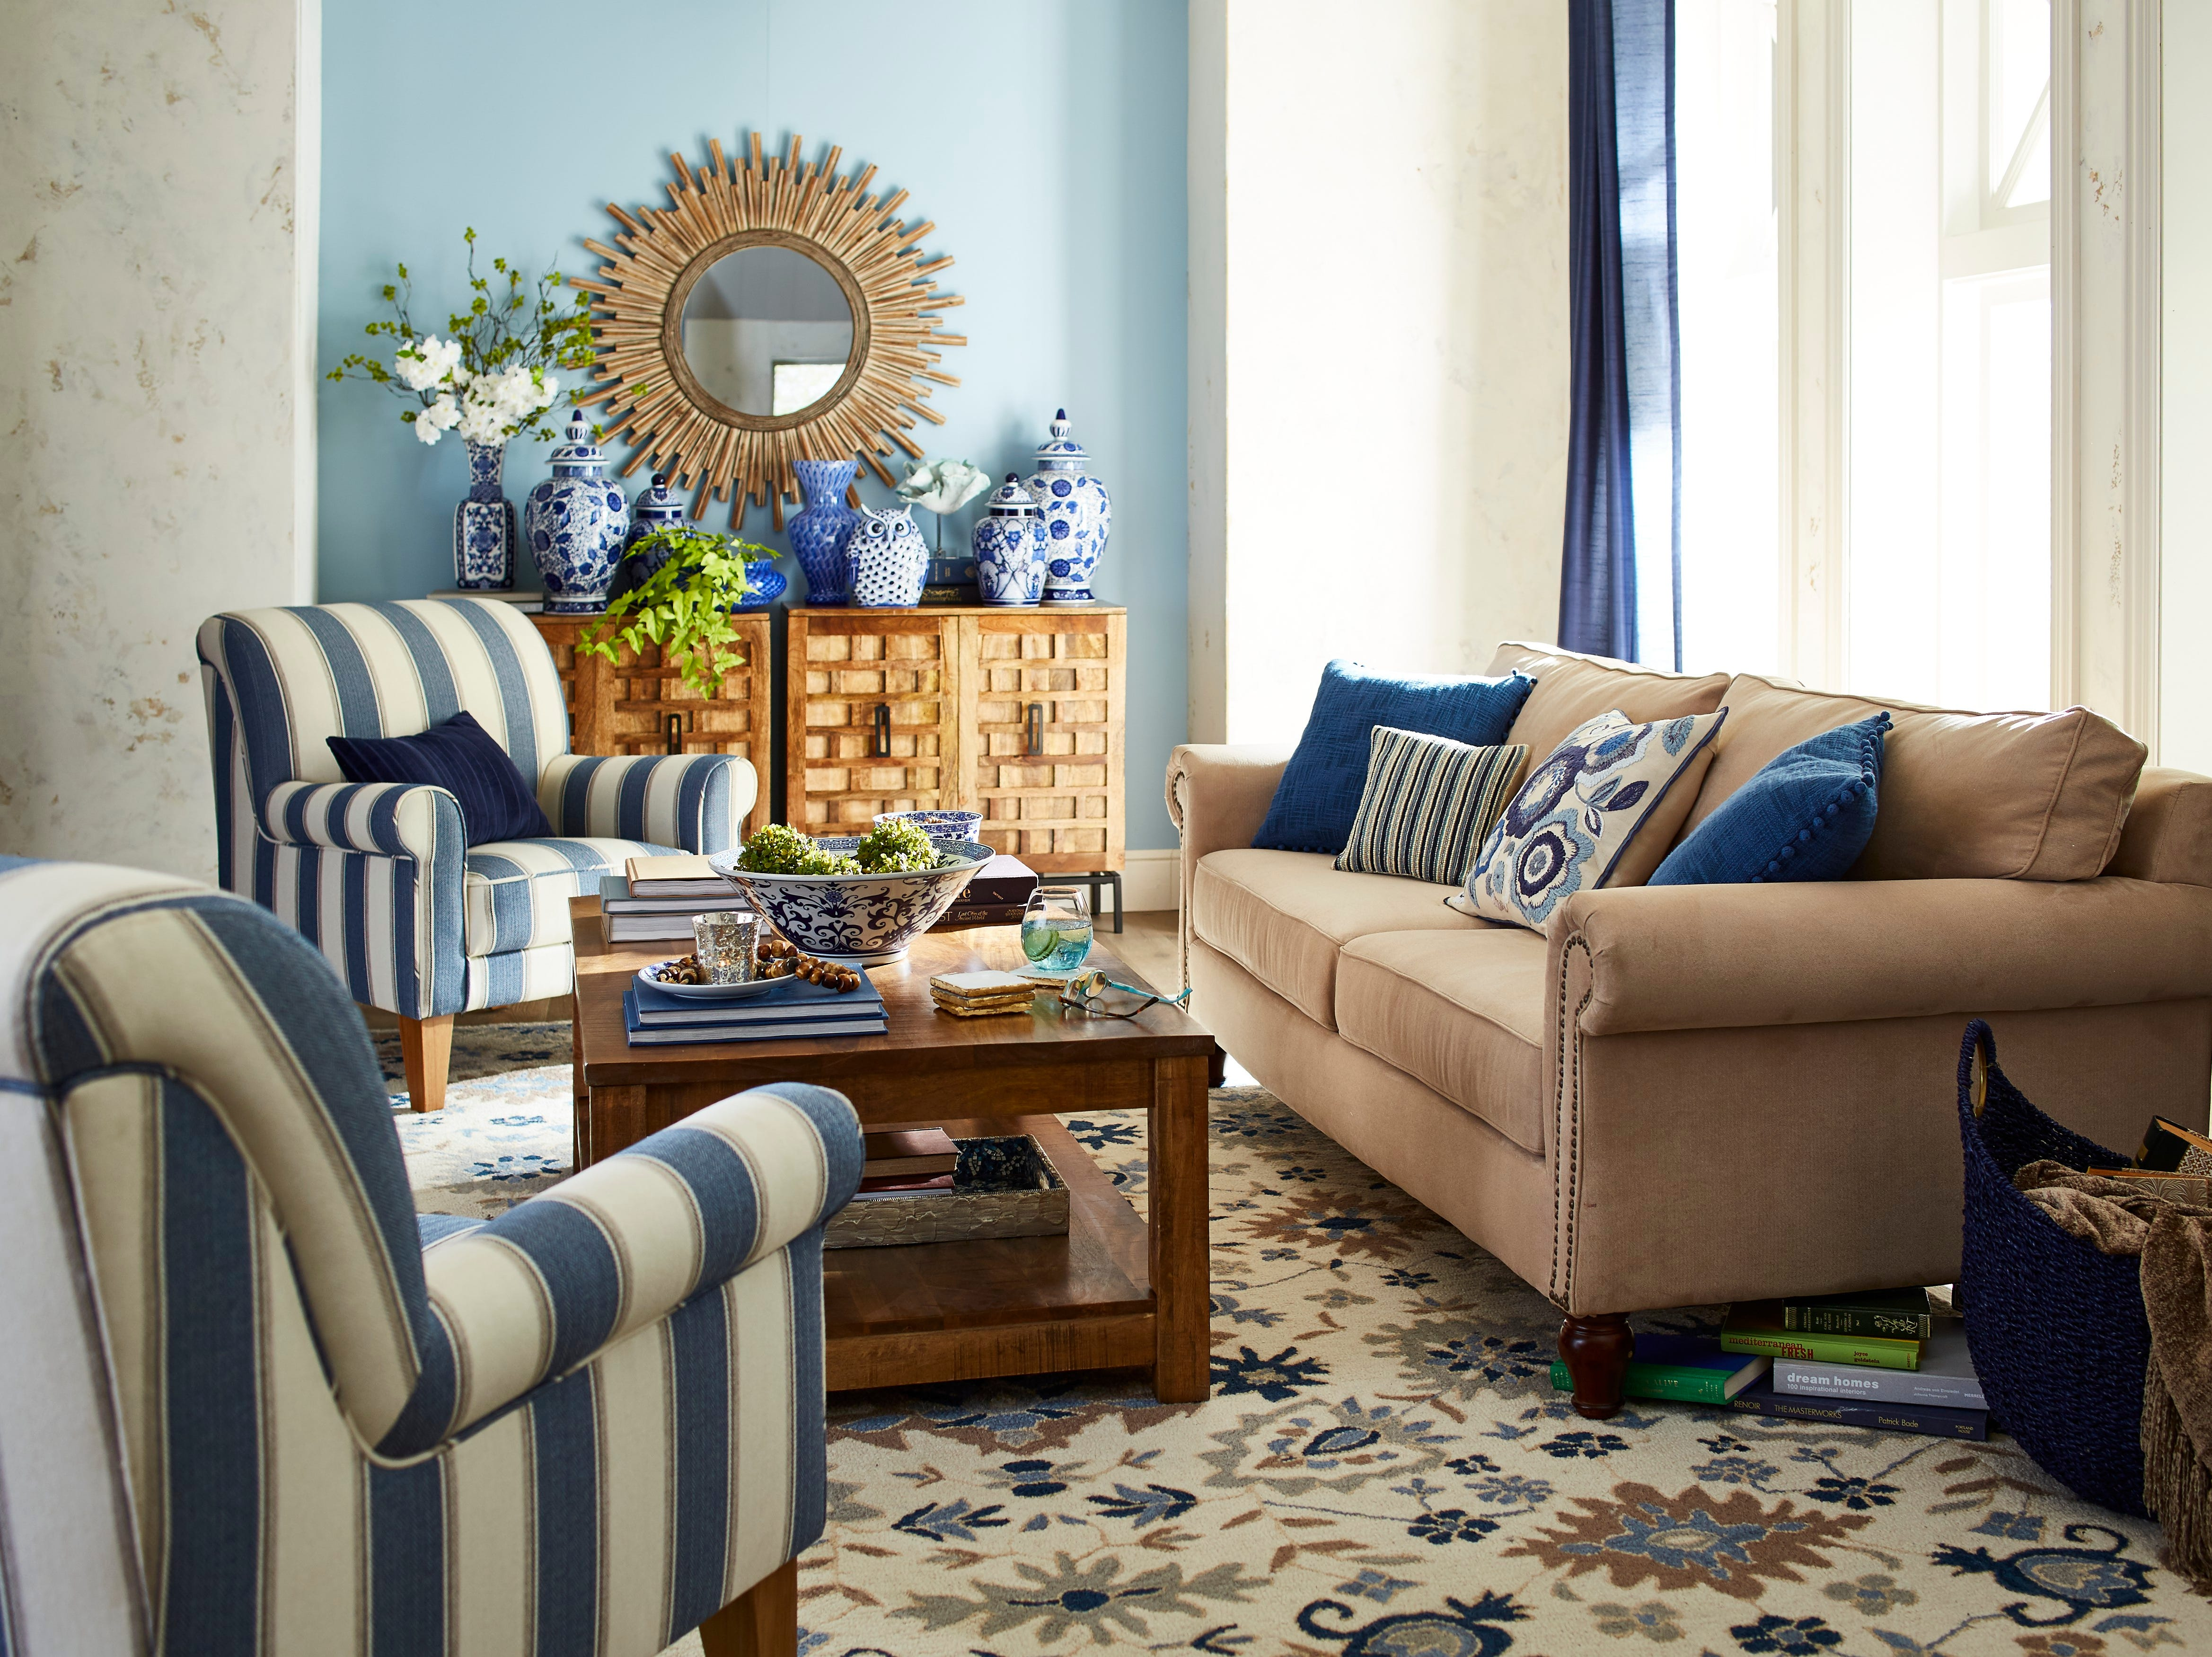 Blue and white collectibles like these ginger jars from Pier 1 Imports provide something that's pleasing to the eye after the sun goes down in a room with a view.